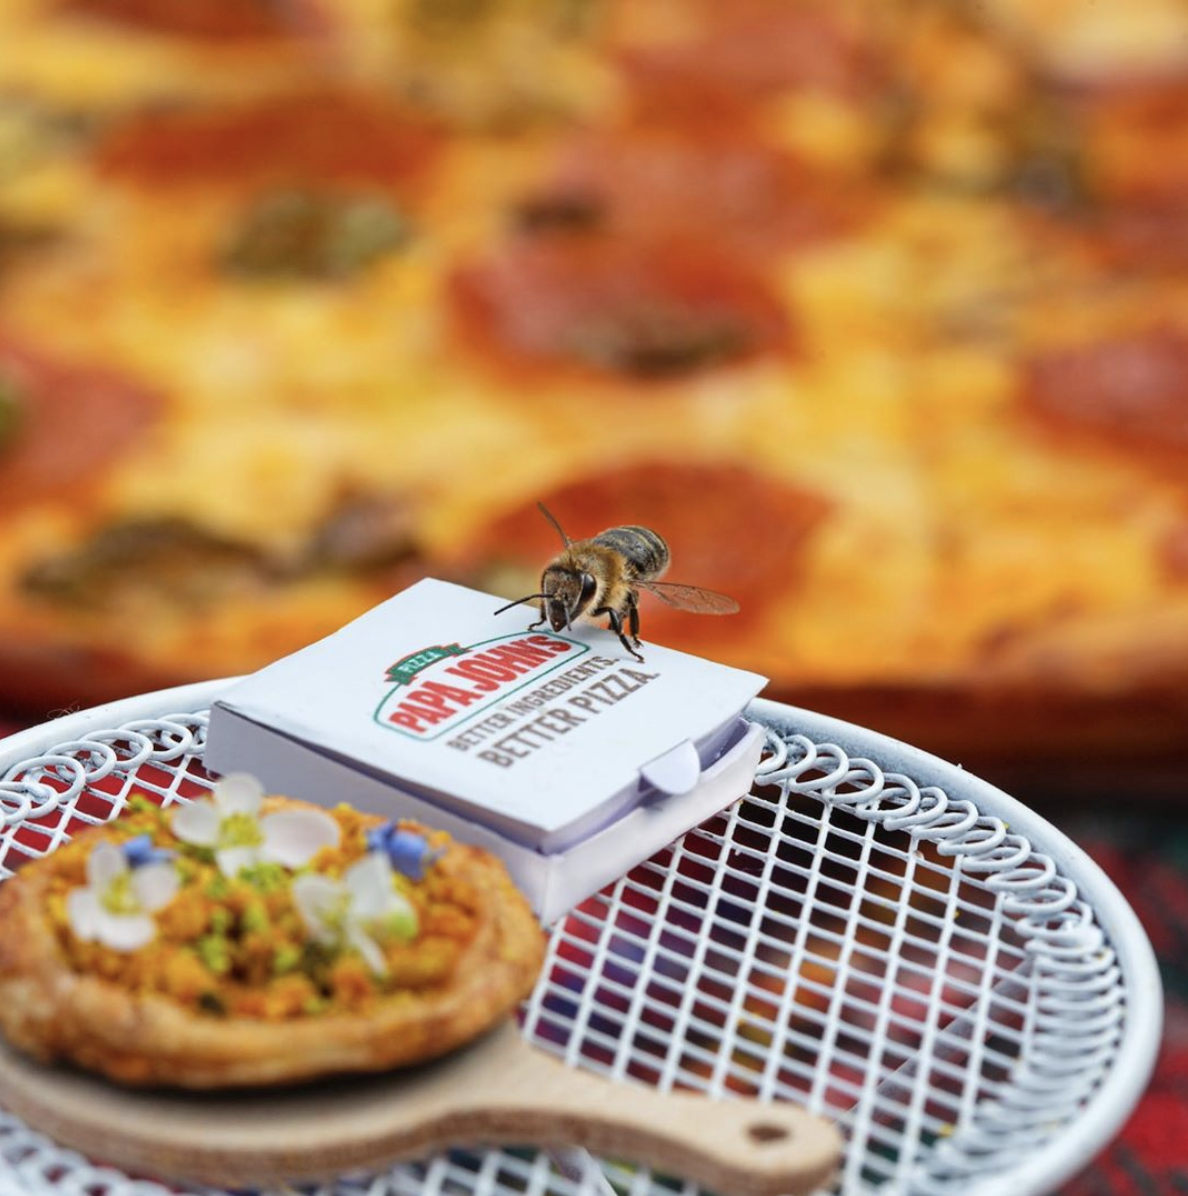 Papa John's Has Made The World's First Pizza That Is Exclusively For Bees